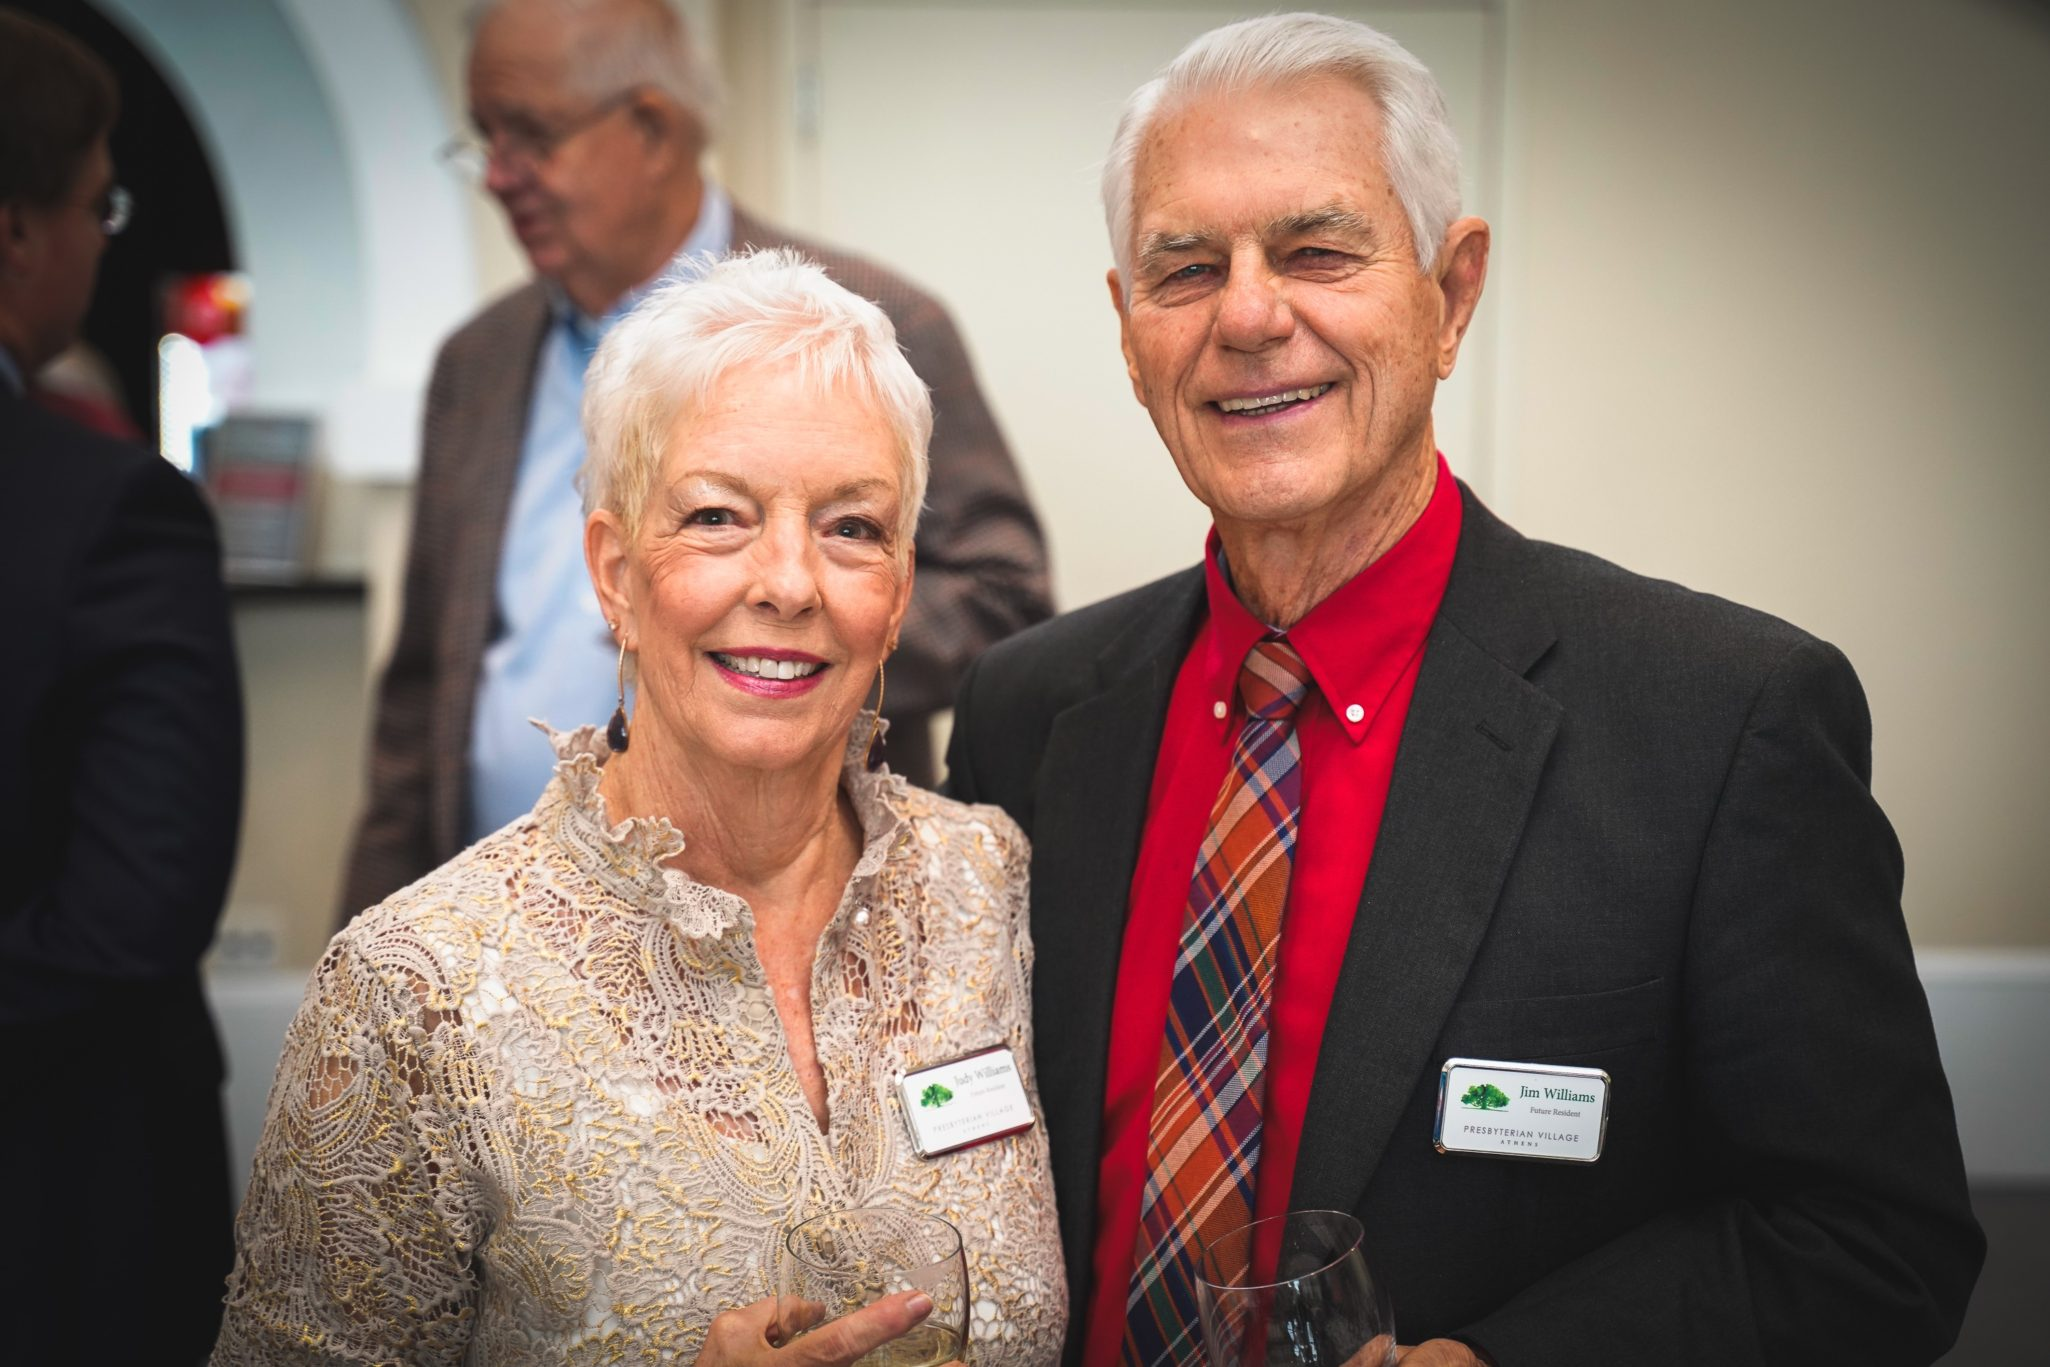 A photo of Jim and Judy Williams